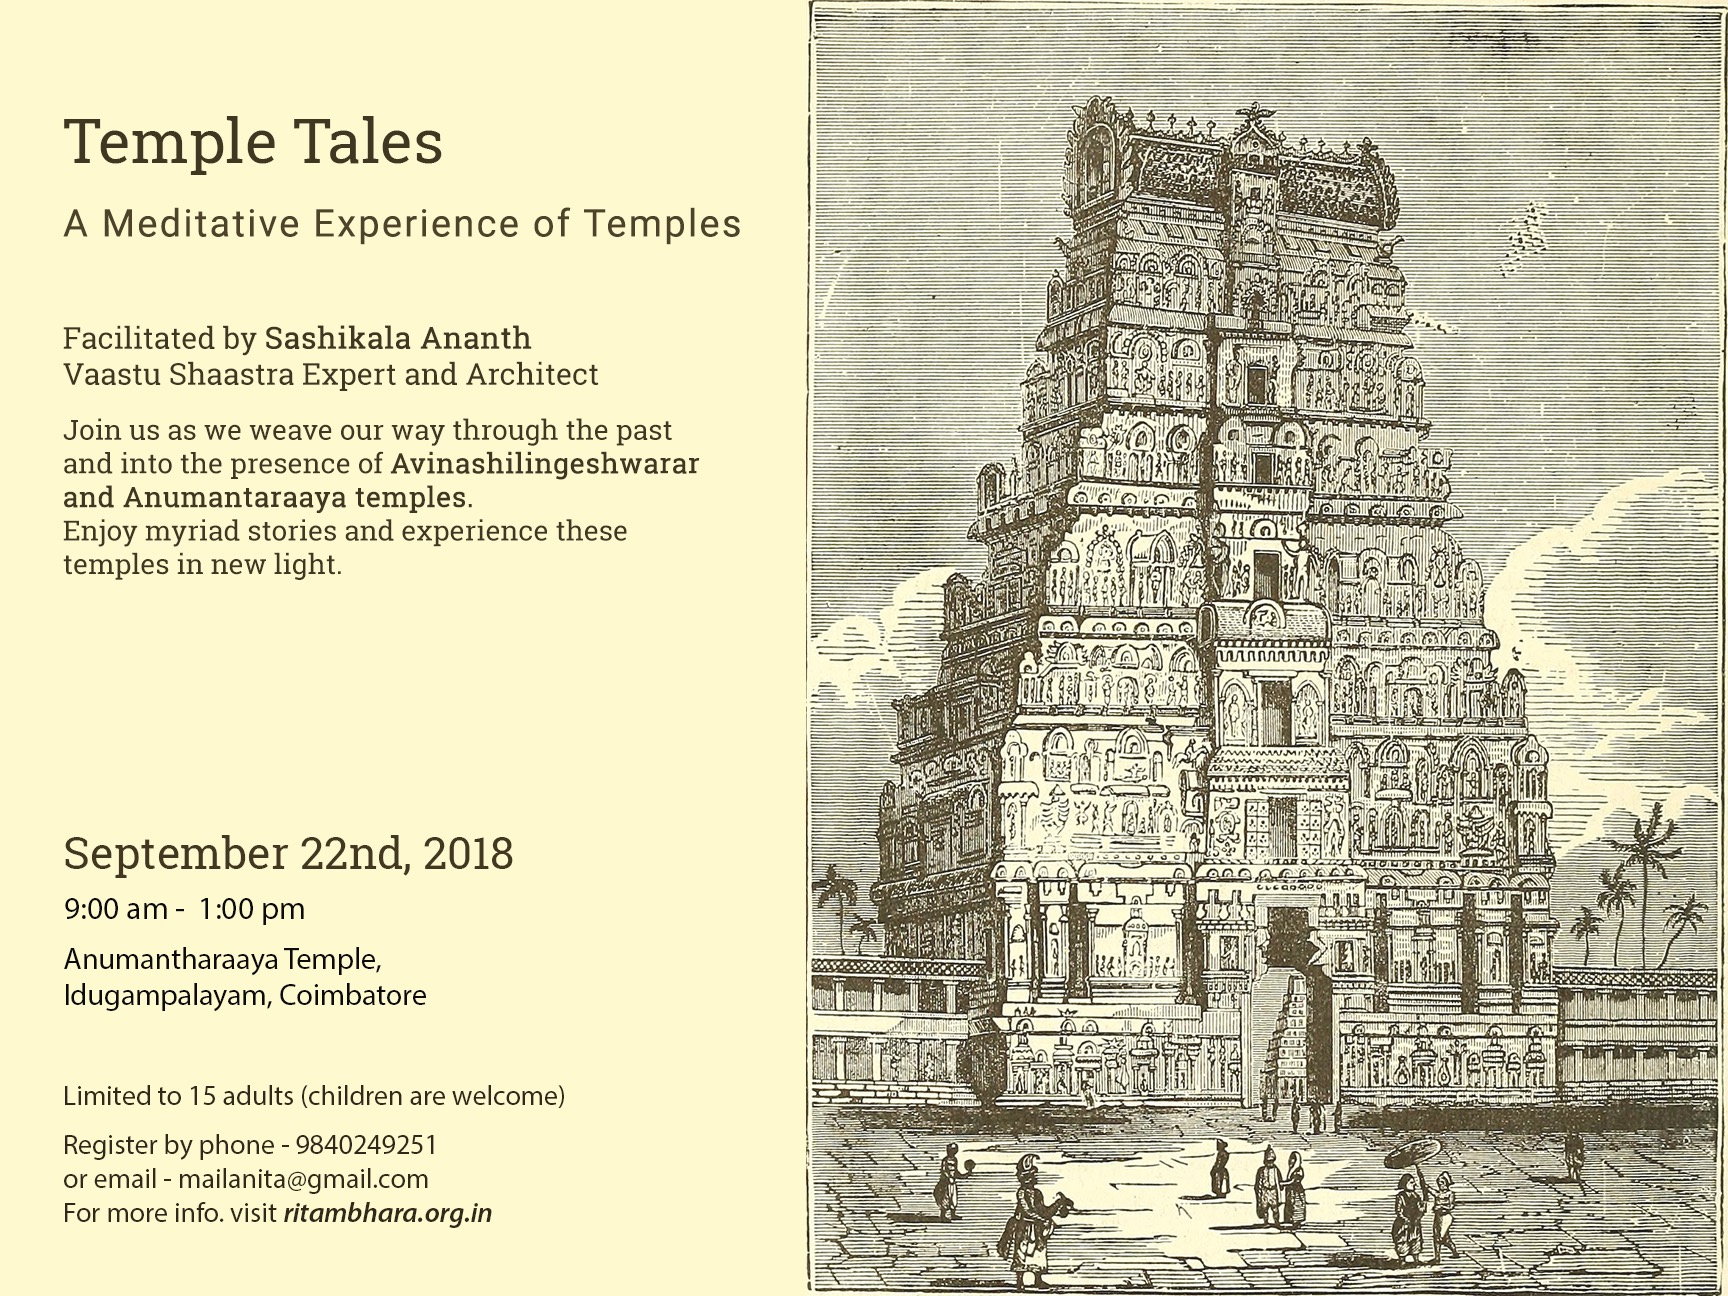 TempleTalesposter22Sept2018